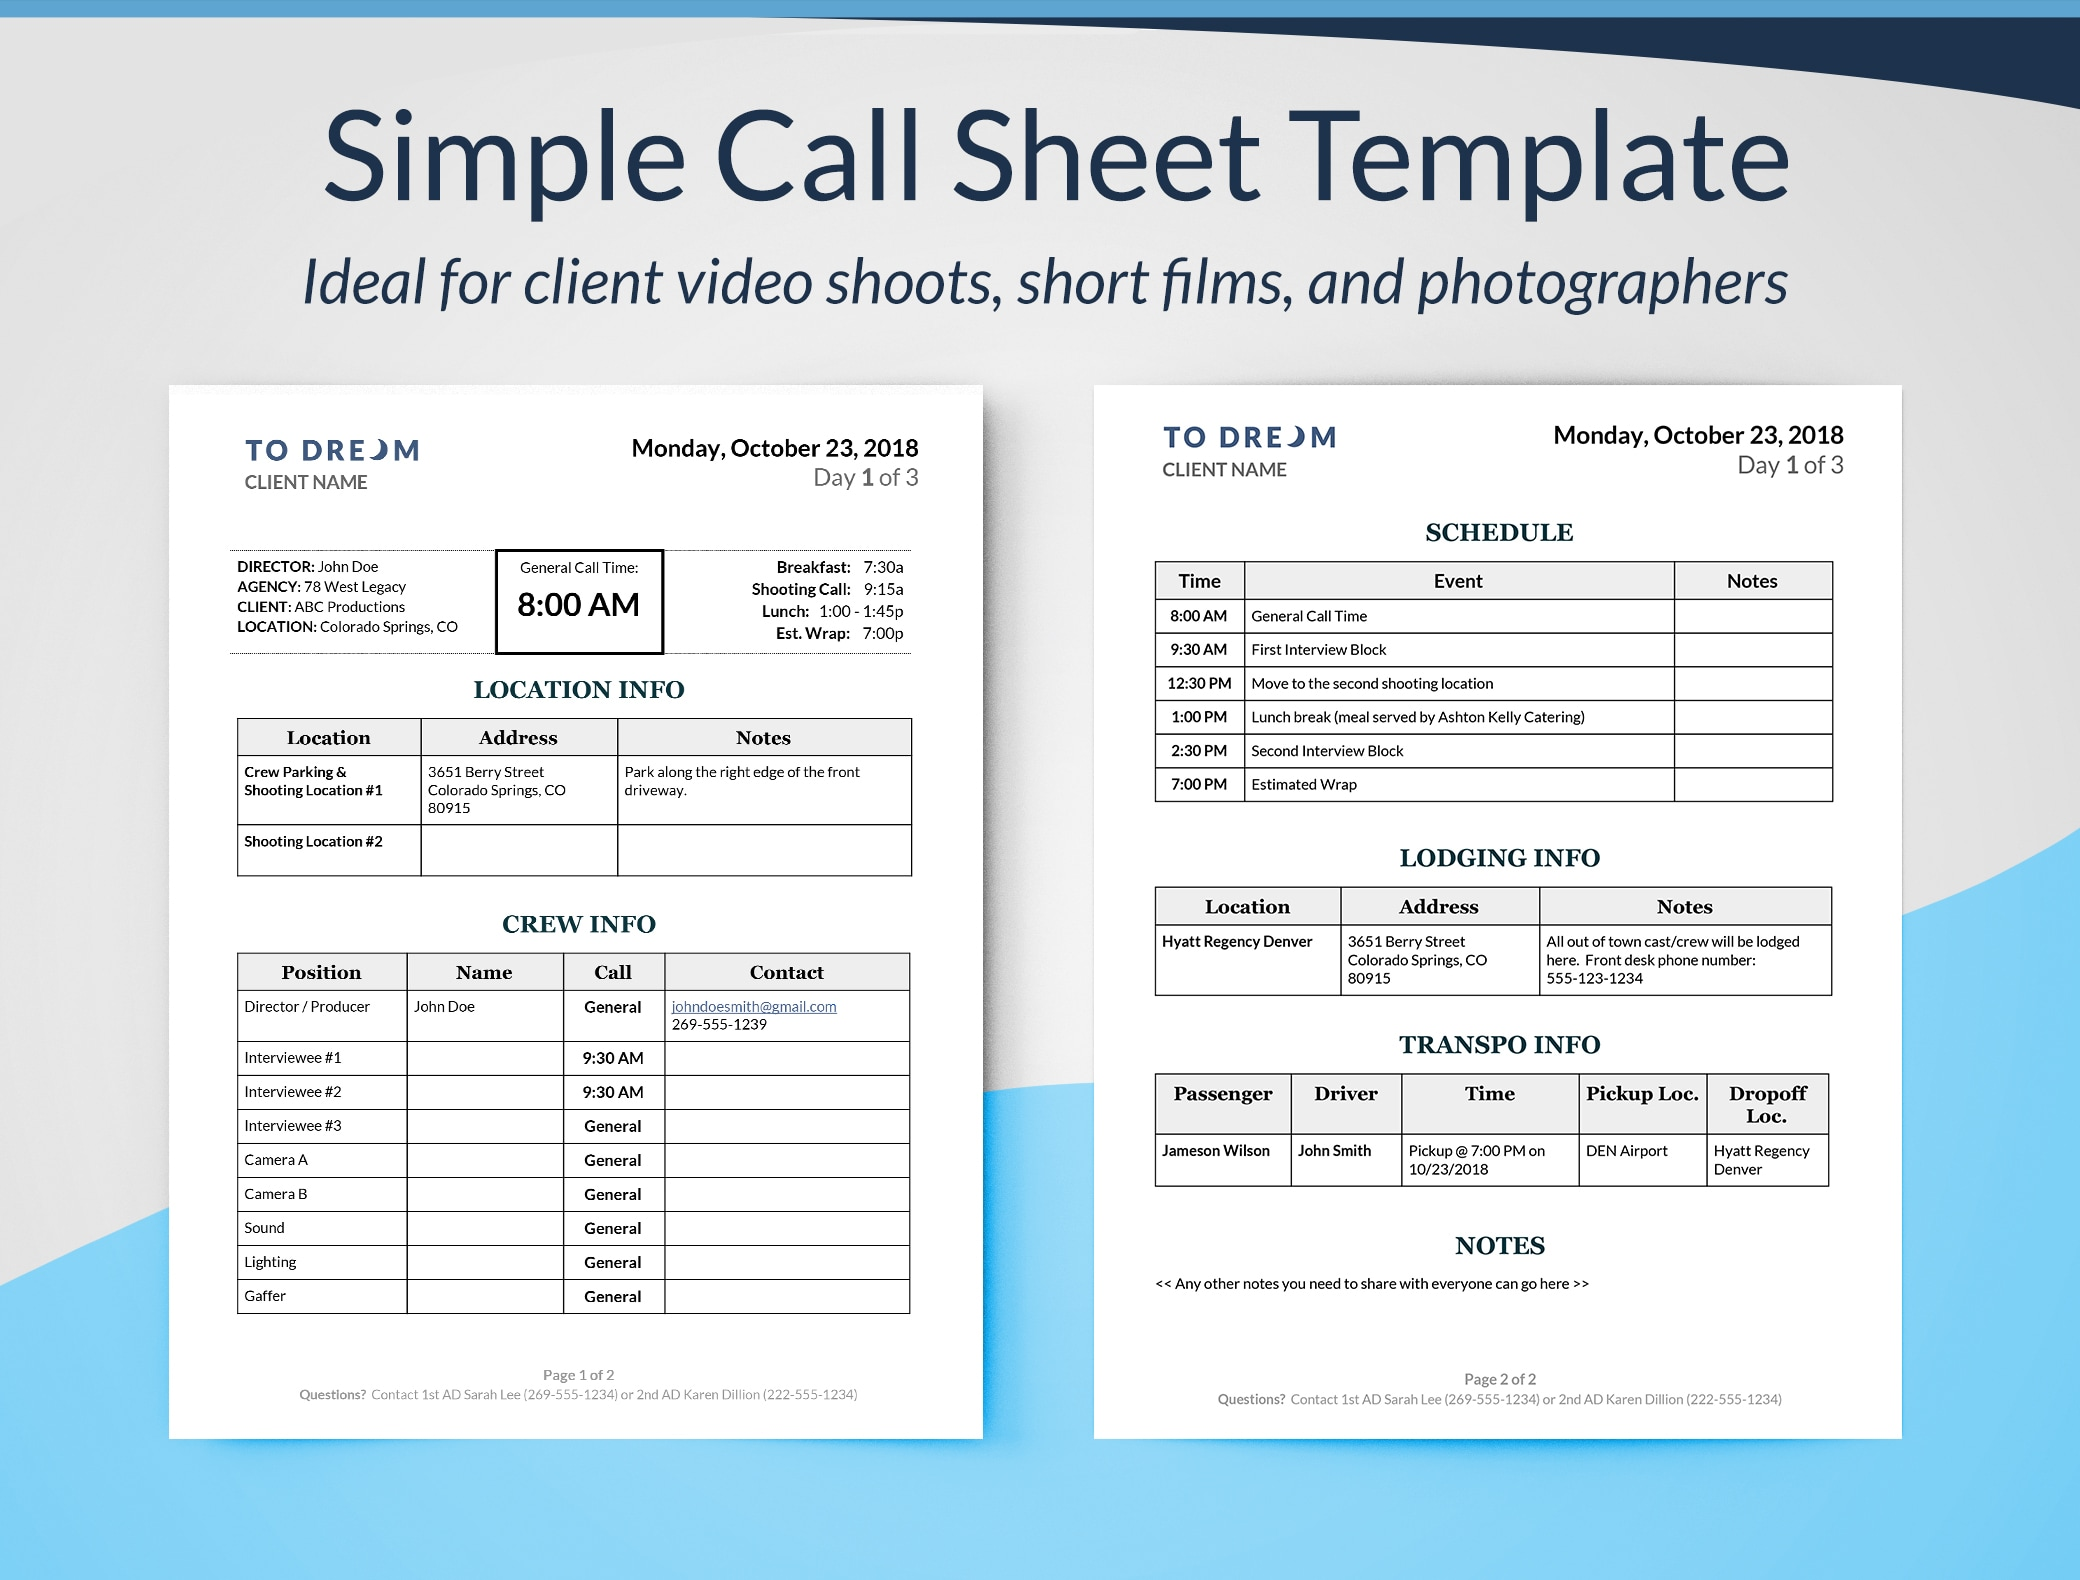 Simple Call Sheet Template For Word Example - Film Production Templates  - Free Downloads -